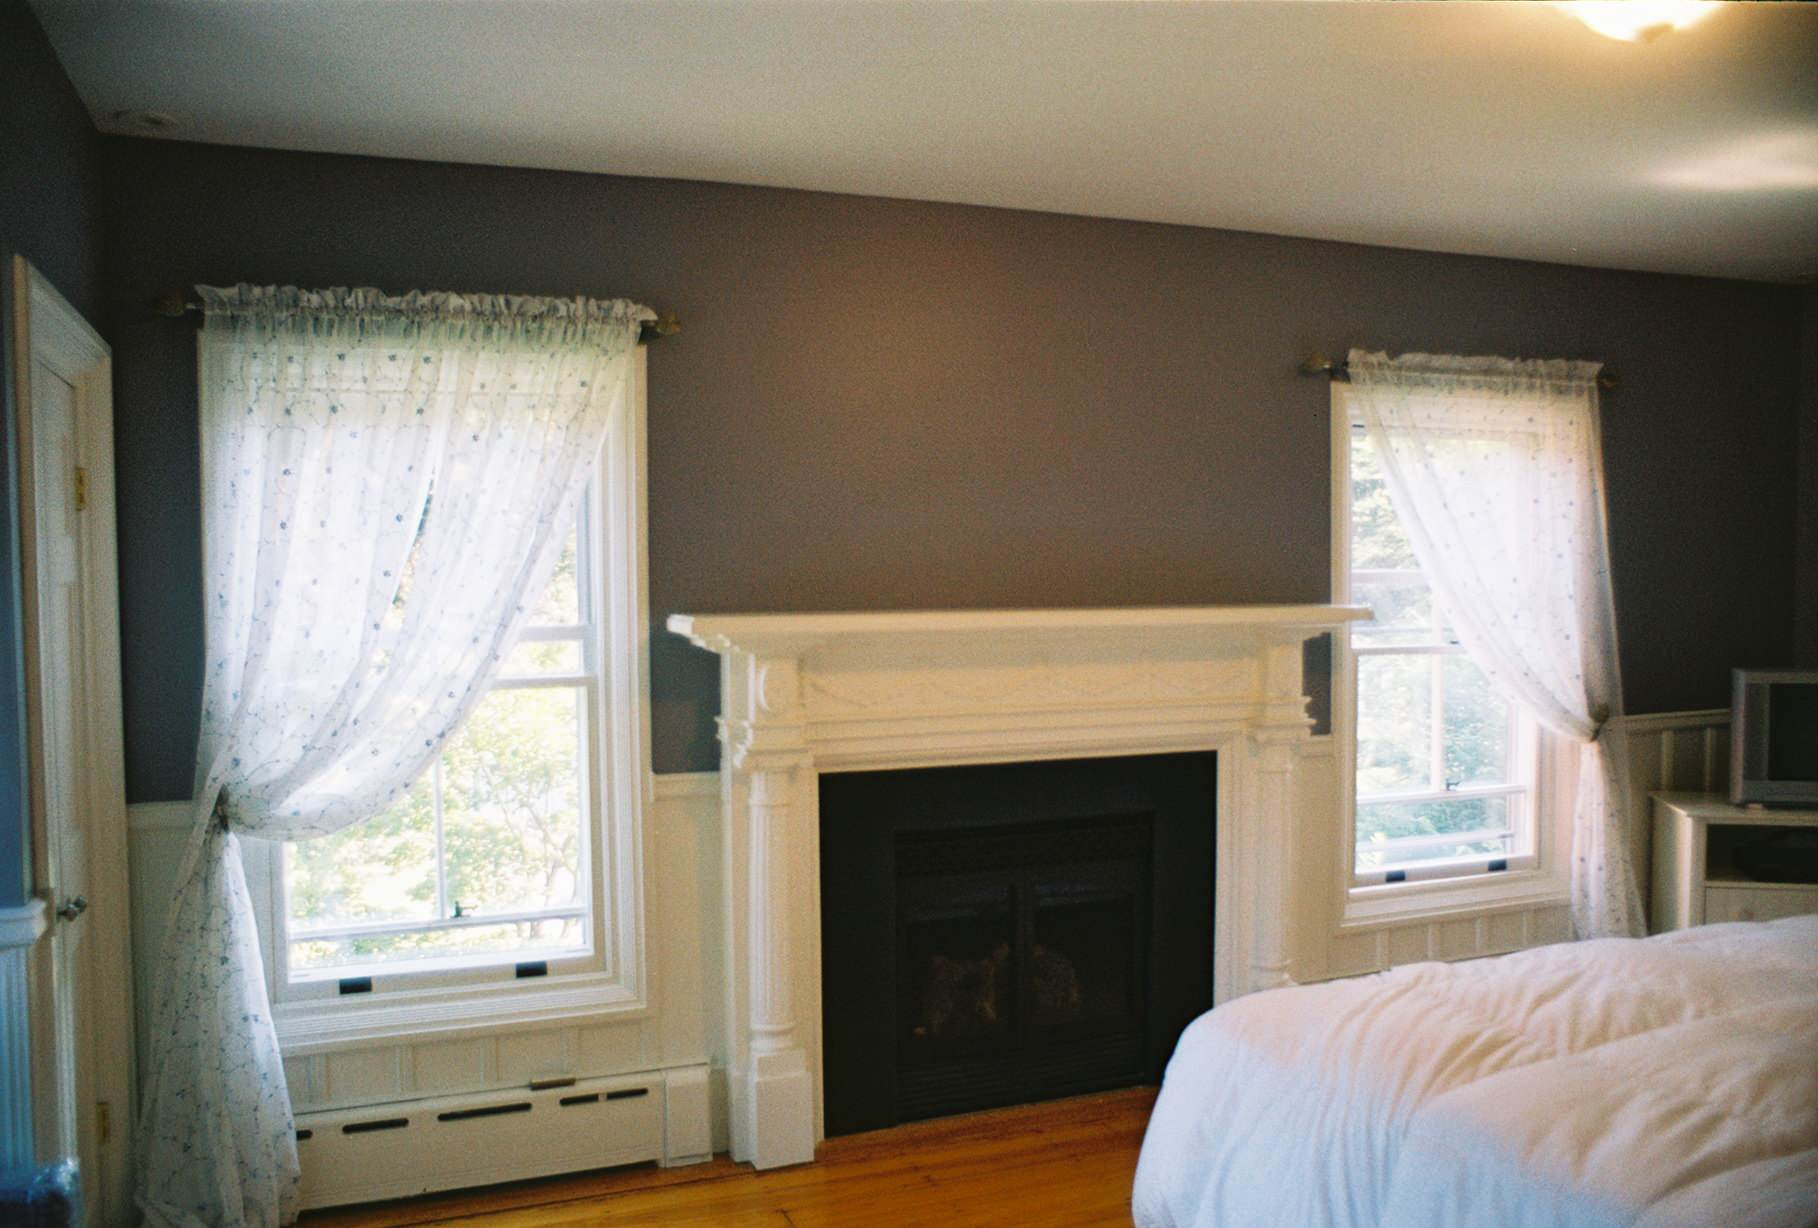 NEW GAS FIREPLACE in MASTER BEDROOM